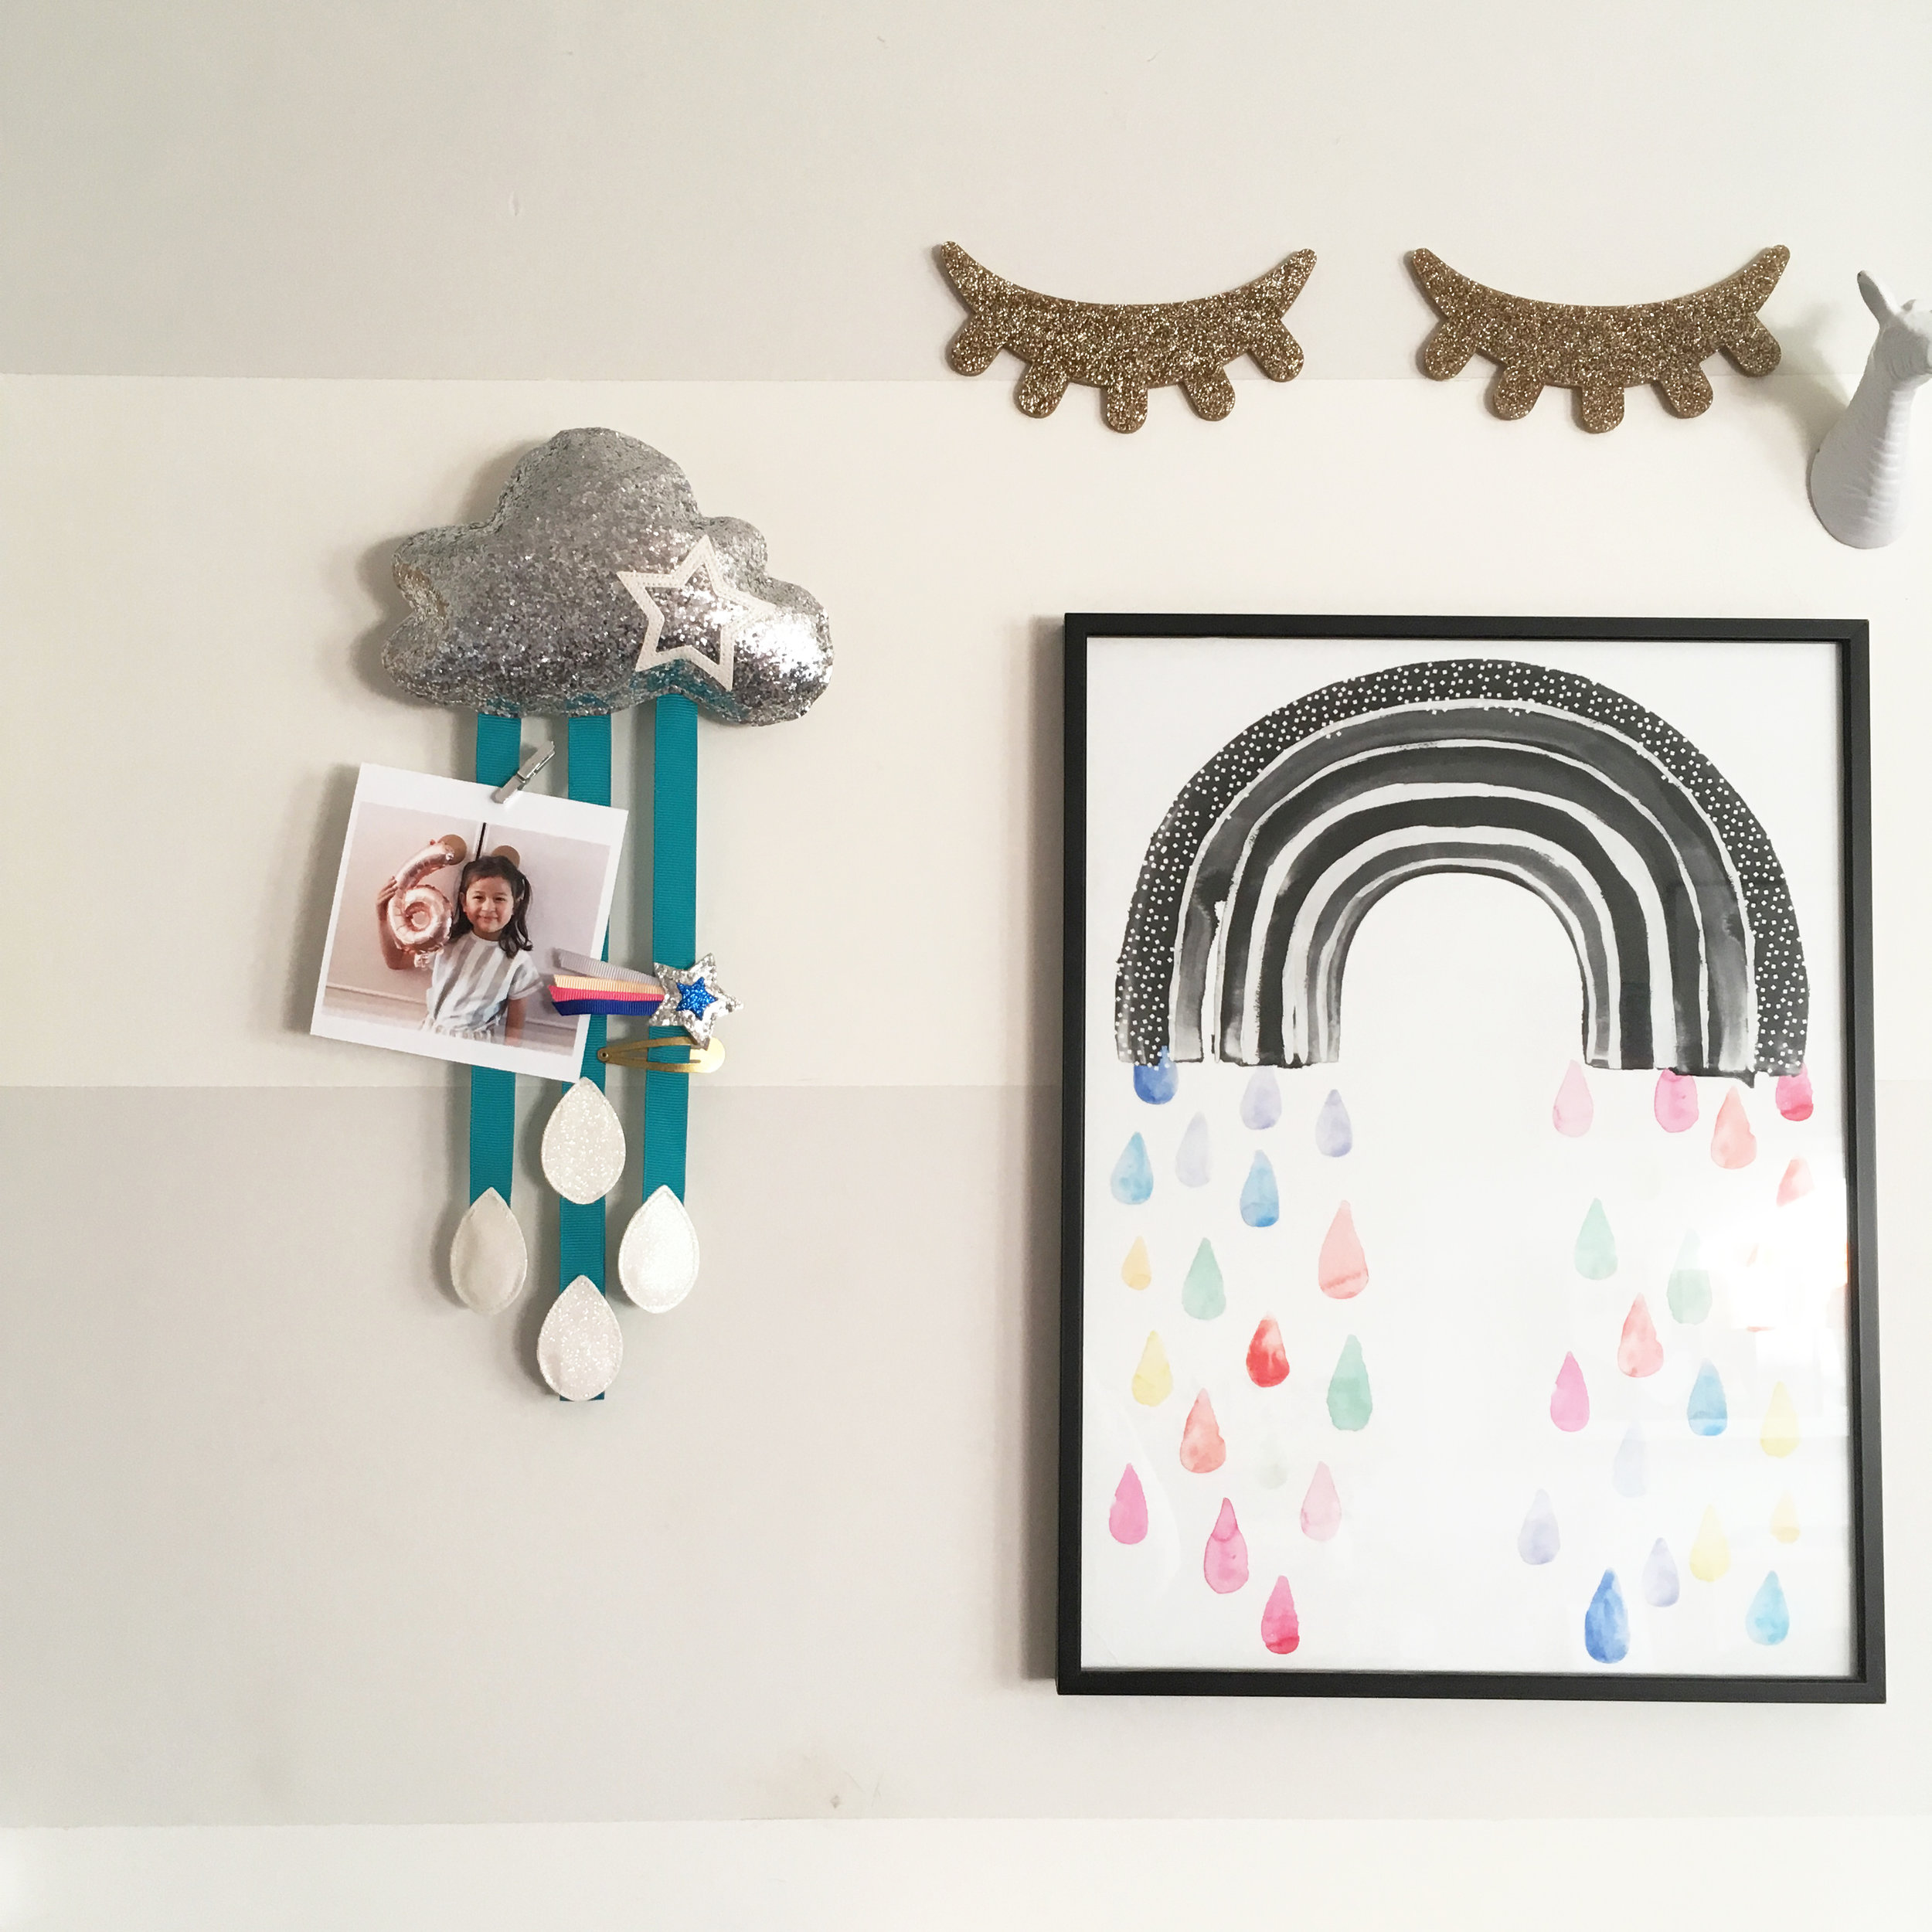 Silver Glitter Cloud Catcher with Teal Ribbons